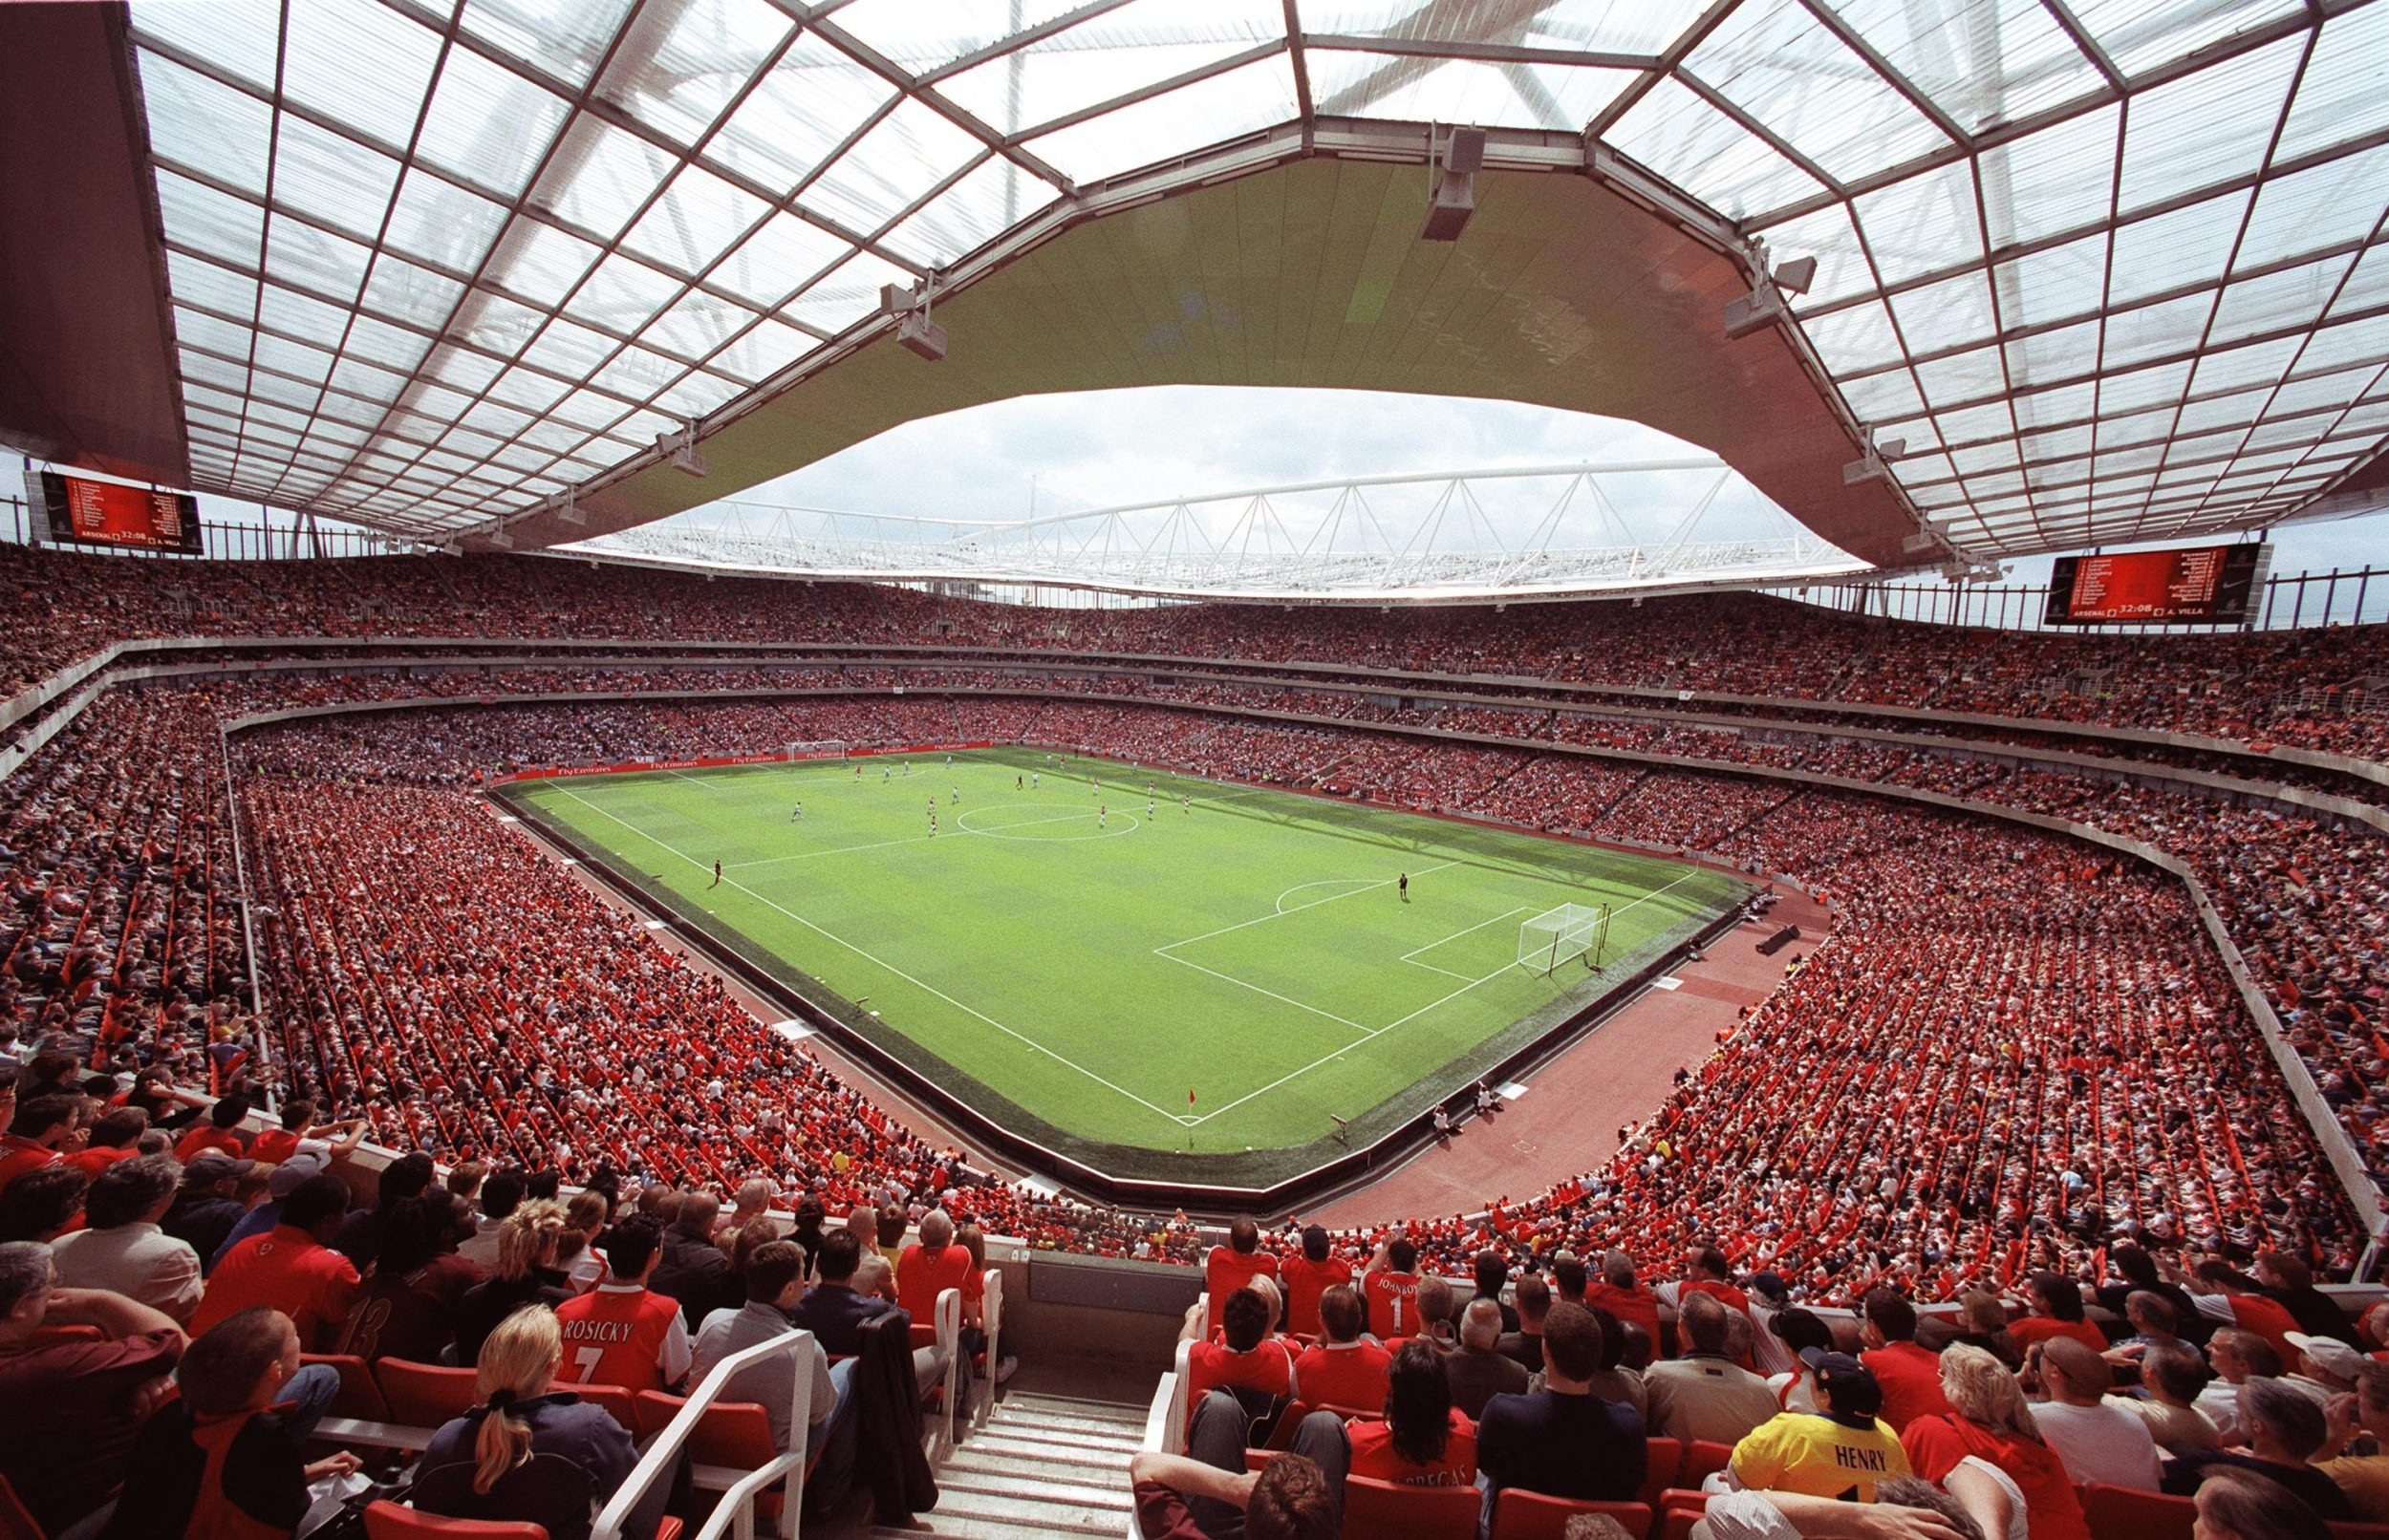 sponsorizzazione sportiva come strumento di marketing emirates arsenal